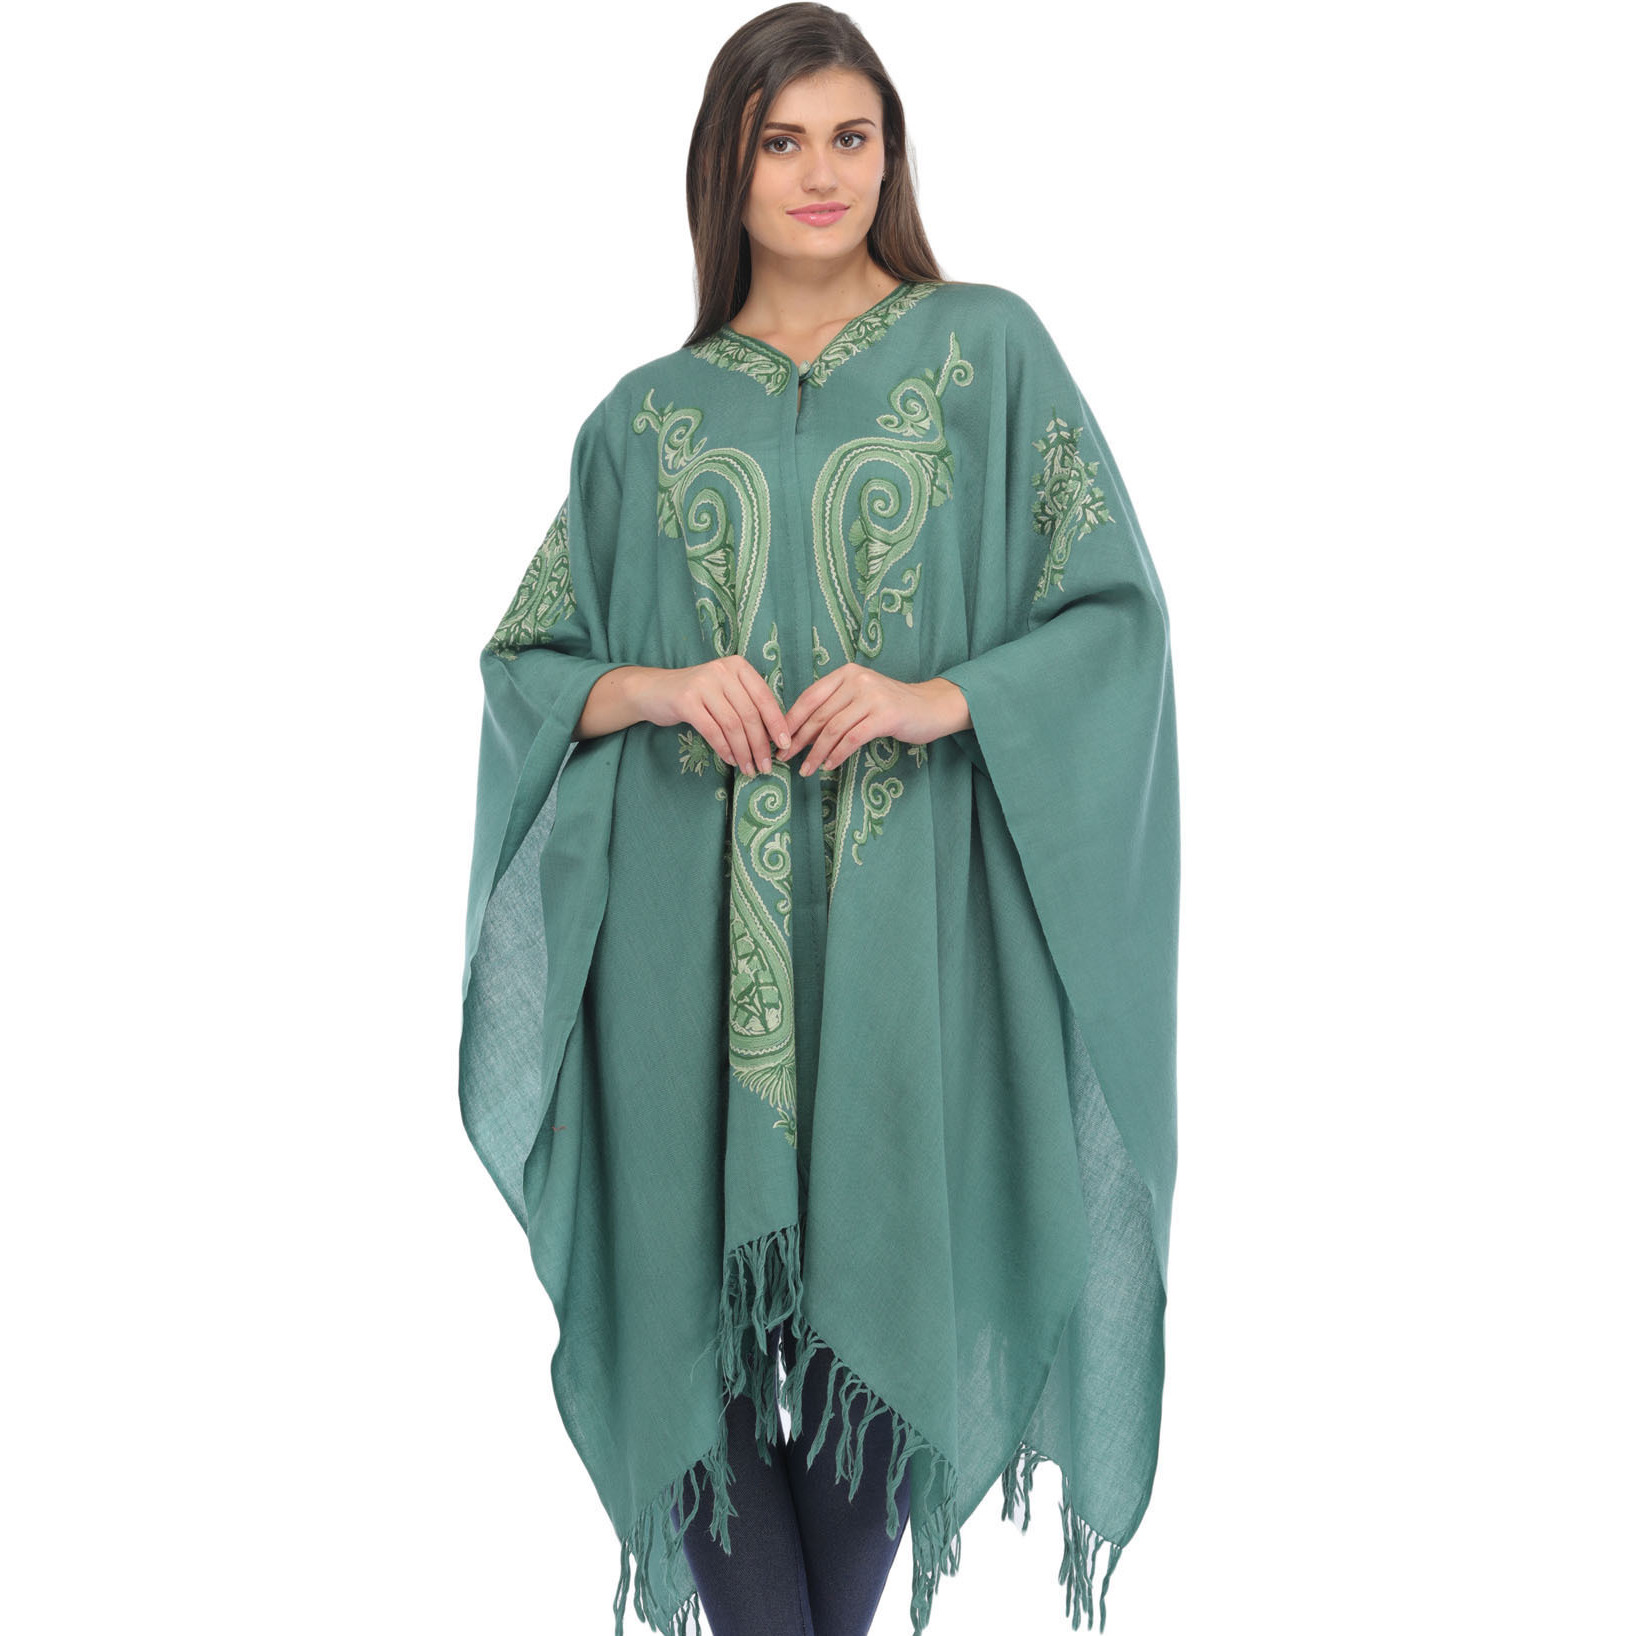 Beryl-Green Cape from Kashmir with Ari Hand-Embroidered Paisleys